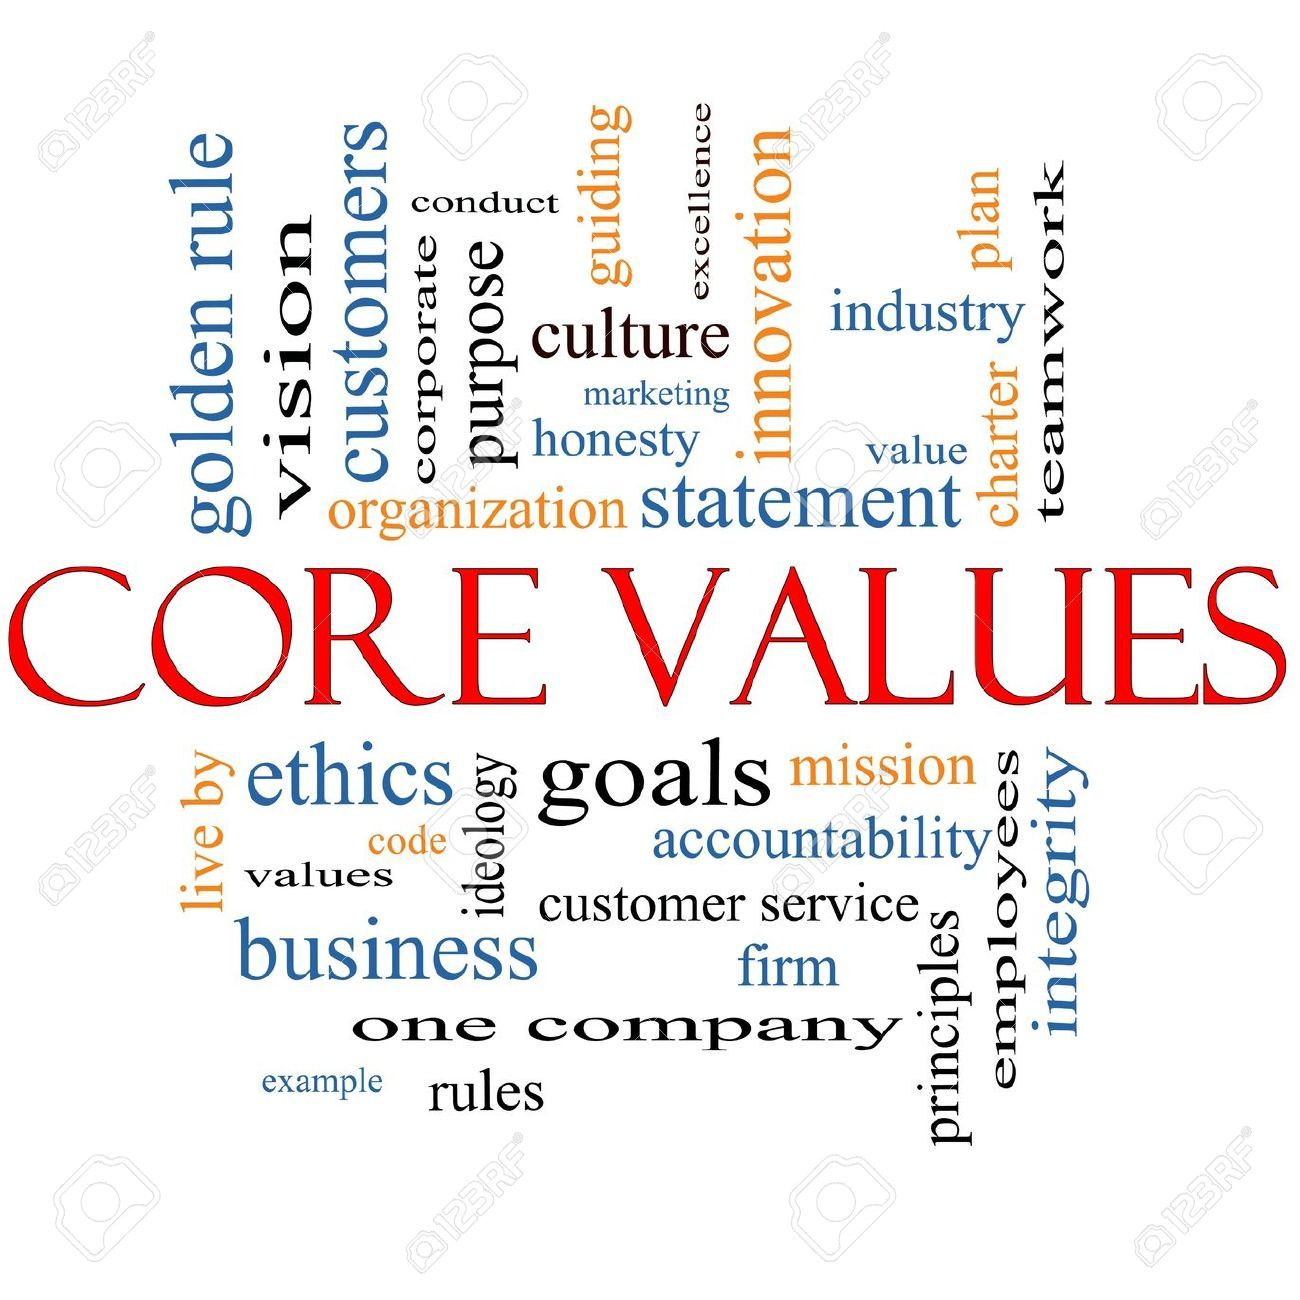 Personal Core Values Veteran Life Lessons Business Office DecorBusiness NetworkingMission StatementsCore ValuesInterior DesignLeadershipGoogle